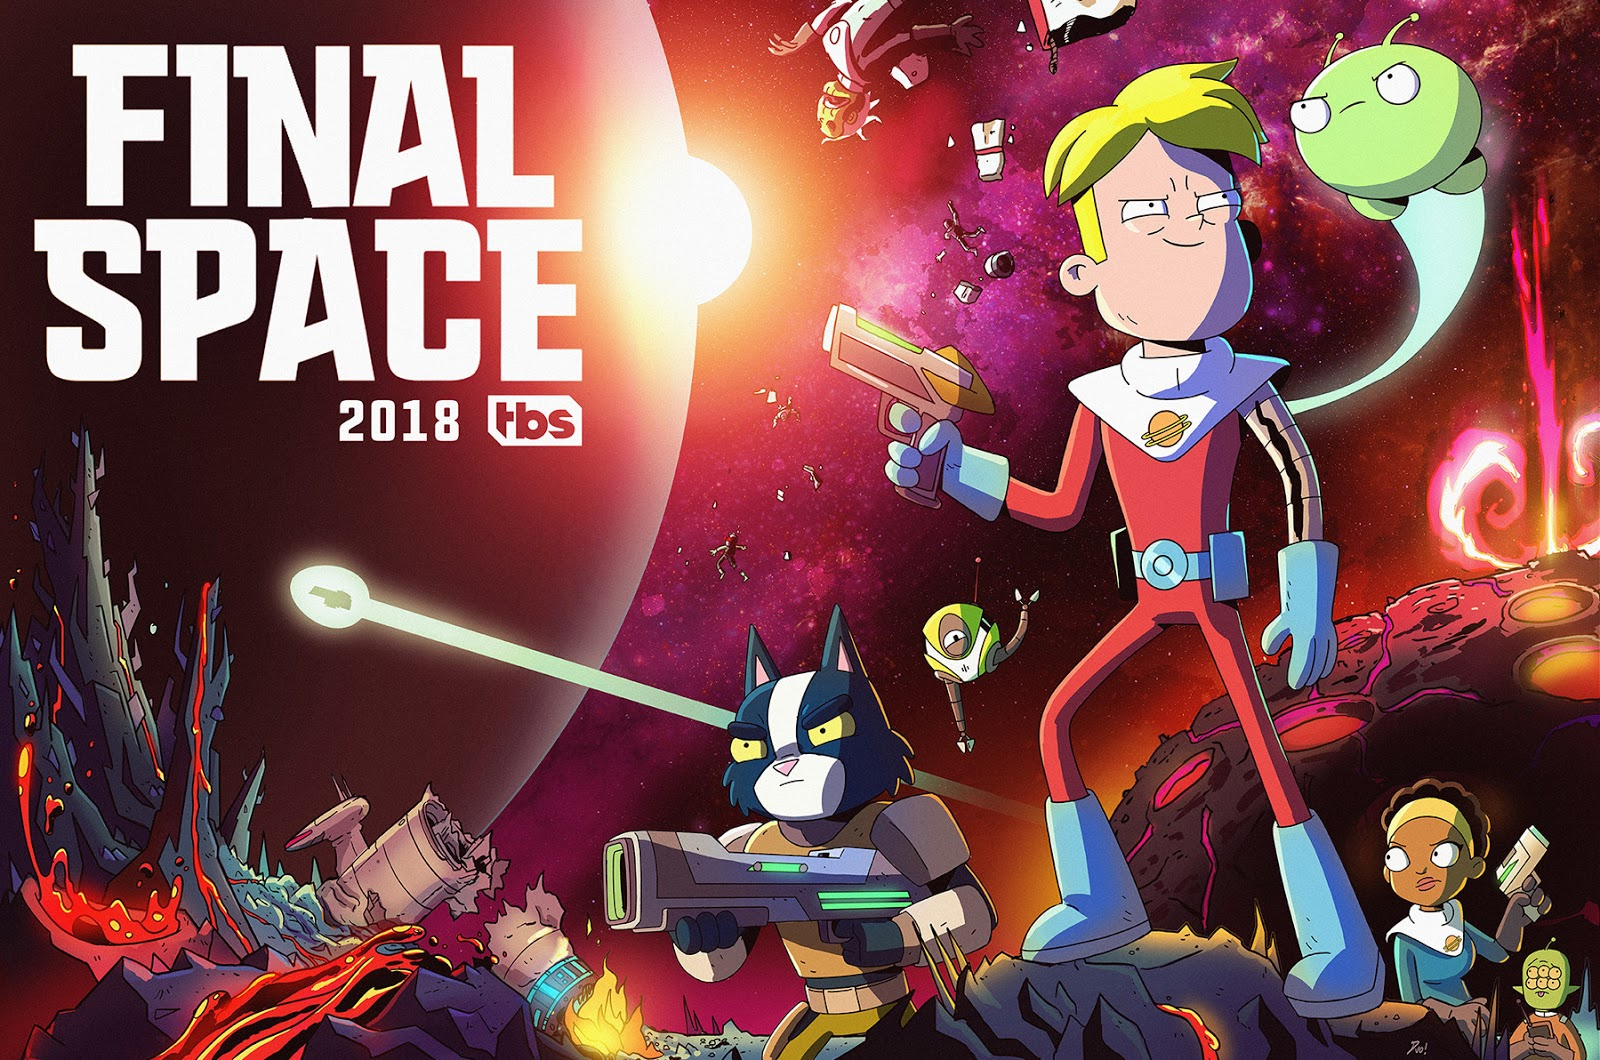 Final Space Episode 1